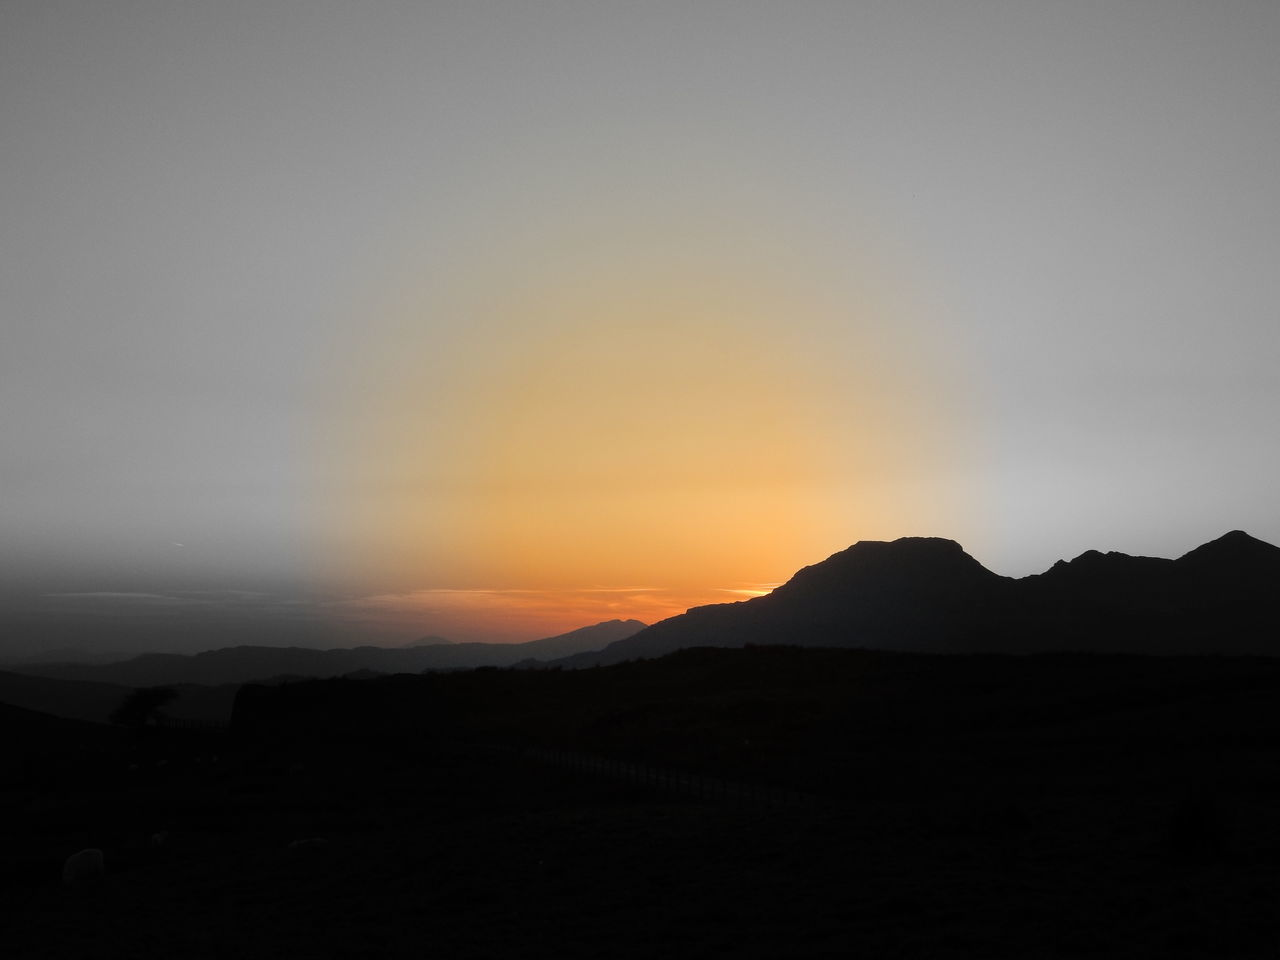 silhouette, sunset, mountain, nature, beauty in nature, tranquil scene, scenics, tranquility, no people, landscape, sky, outdoors, day